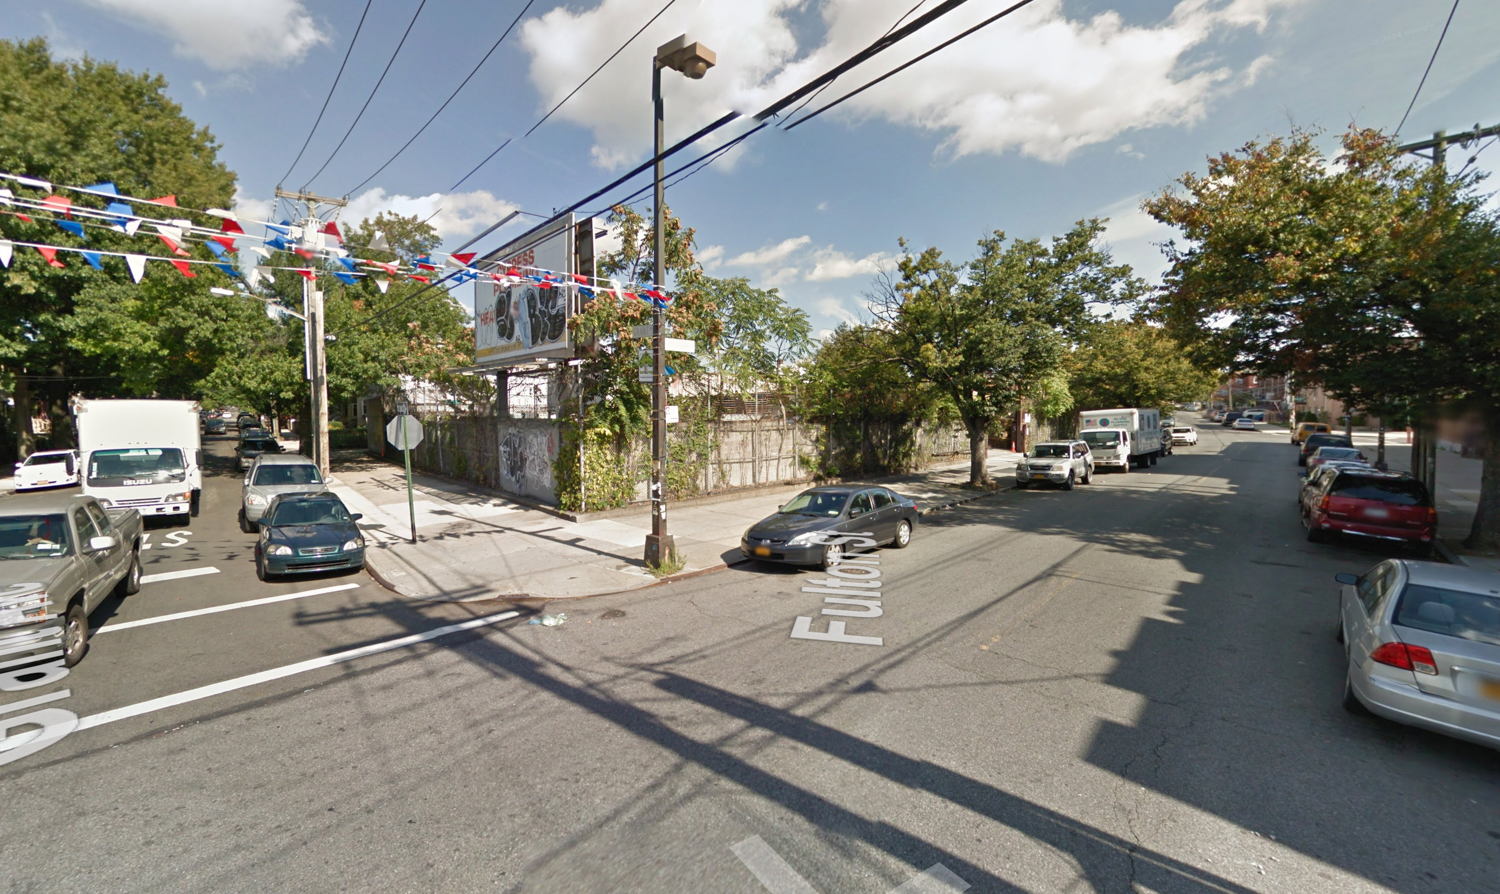 3471 Fulton Street, via Google Maps